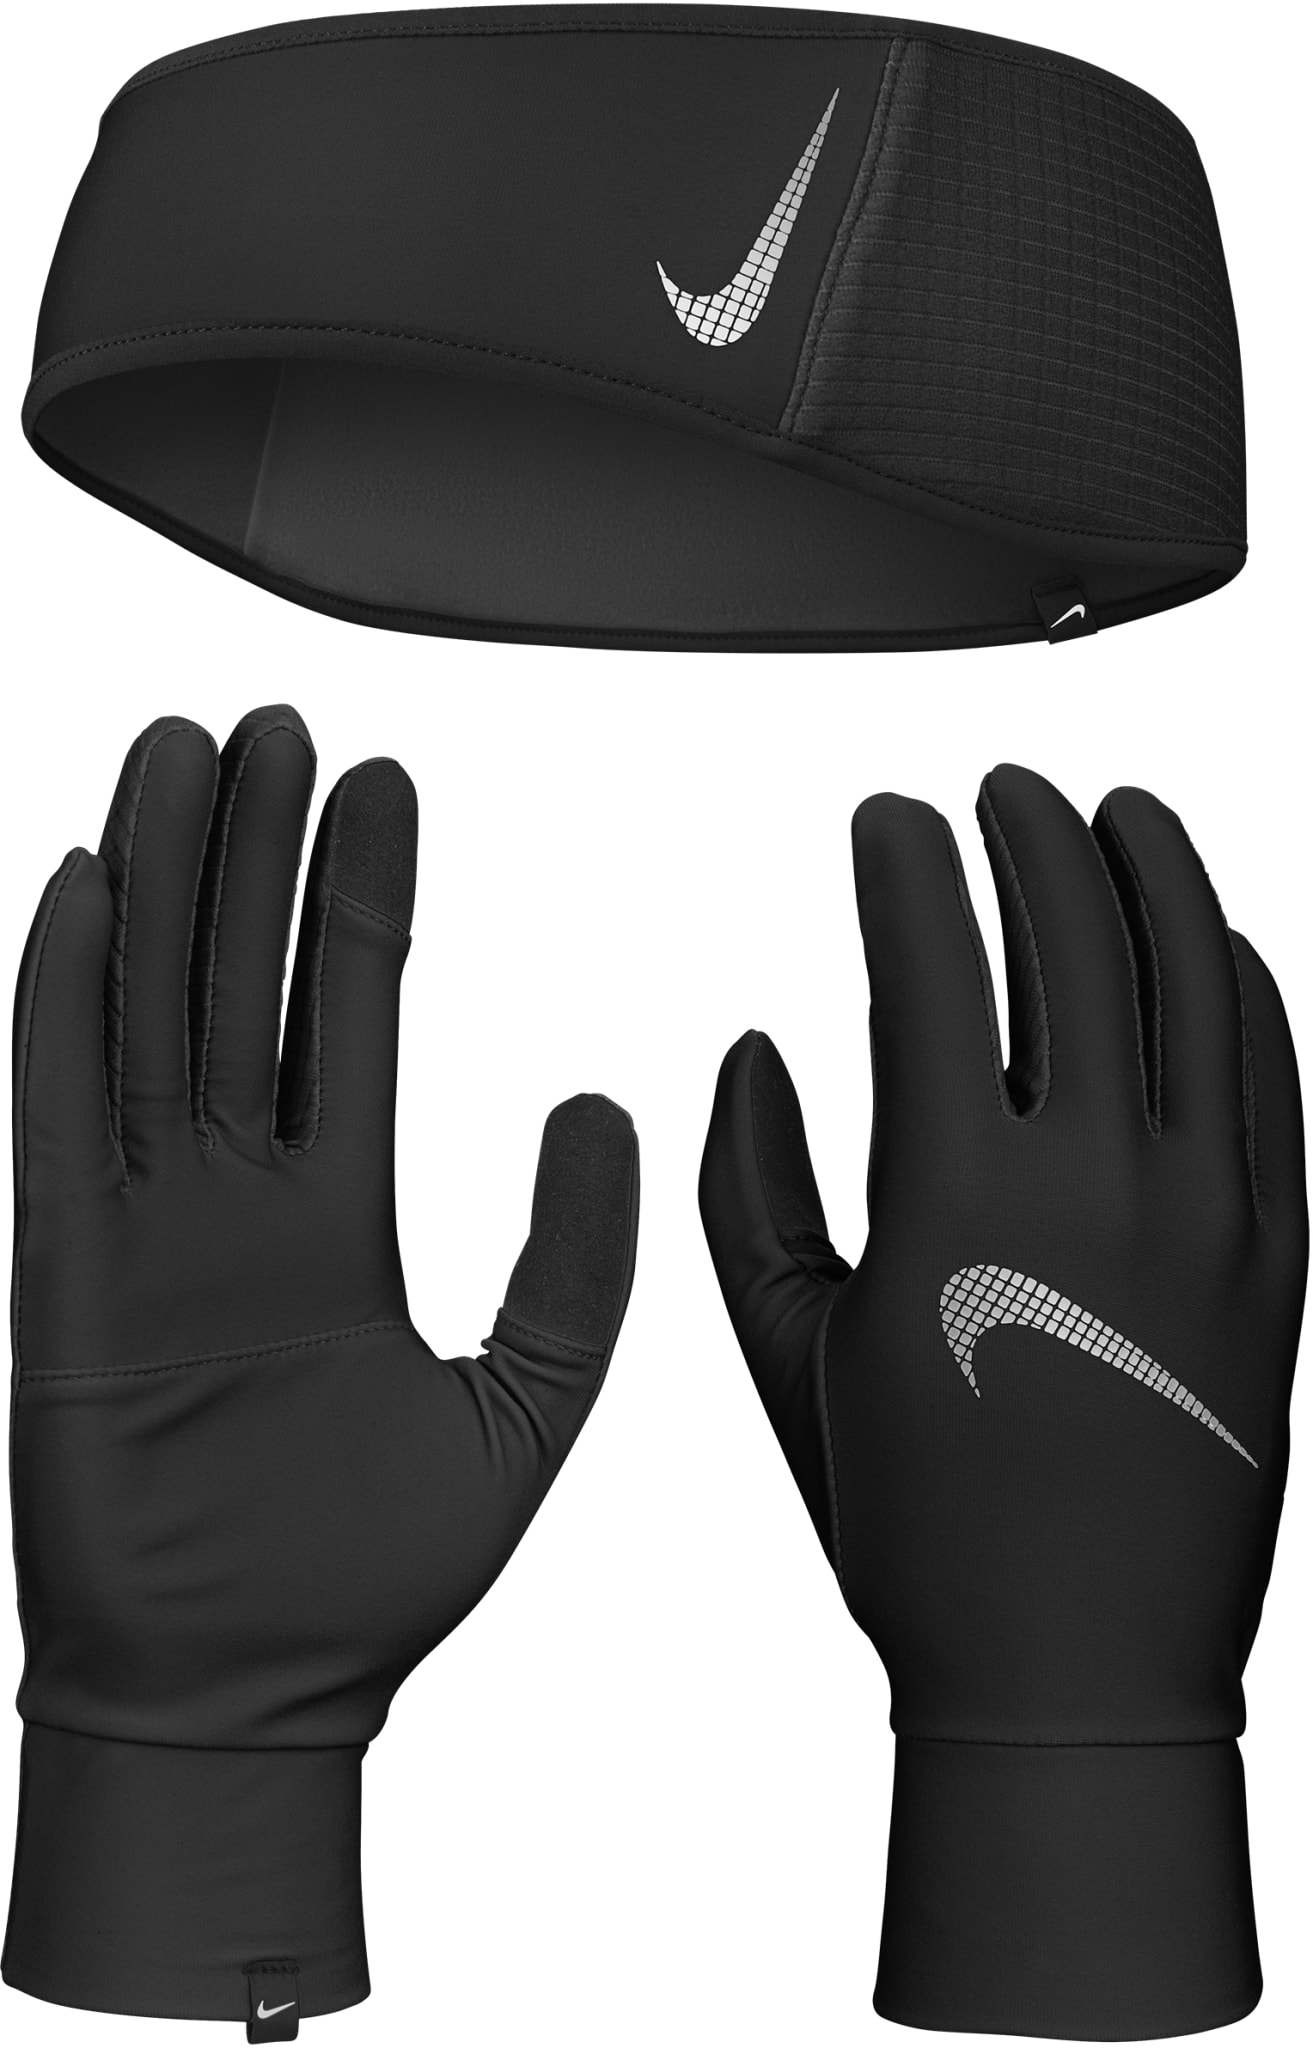 Essential Running Headband and Glove Set Men